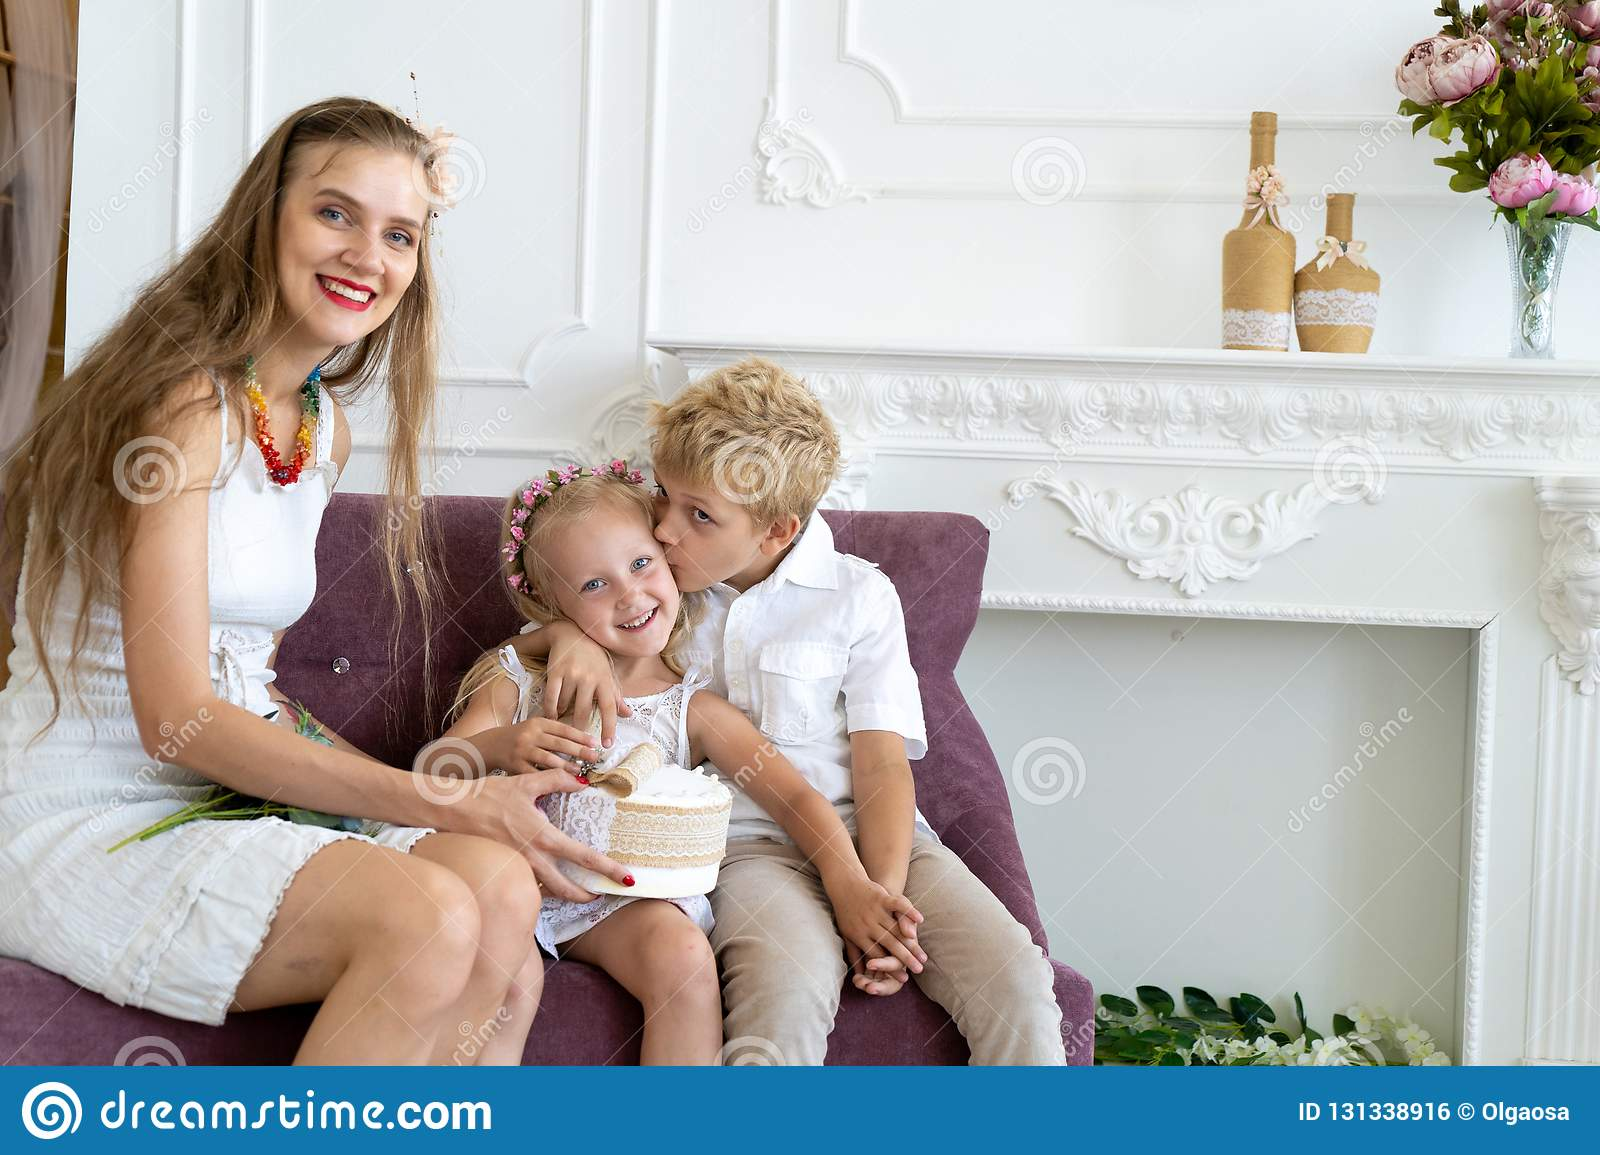 Woman is sitting on the couch with her son and daughter